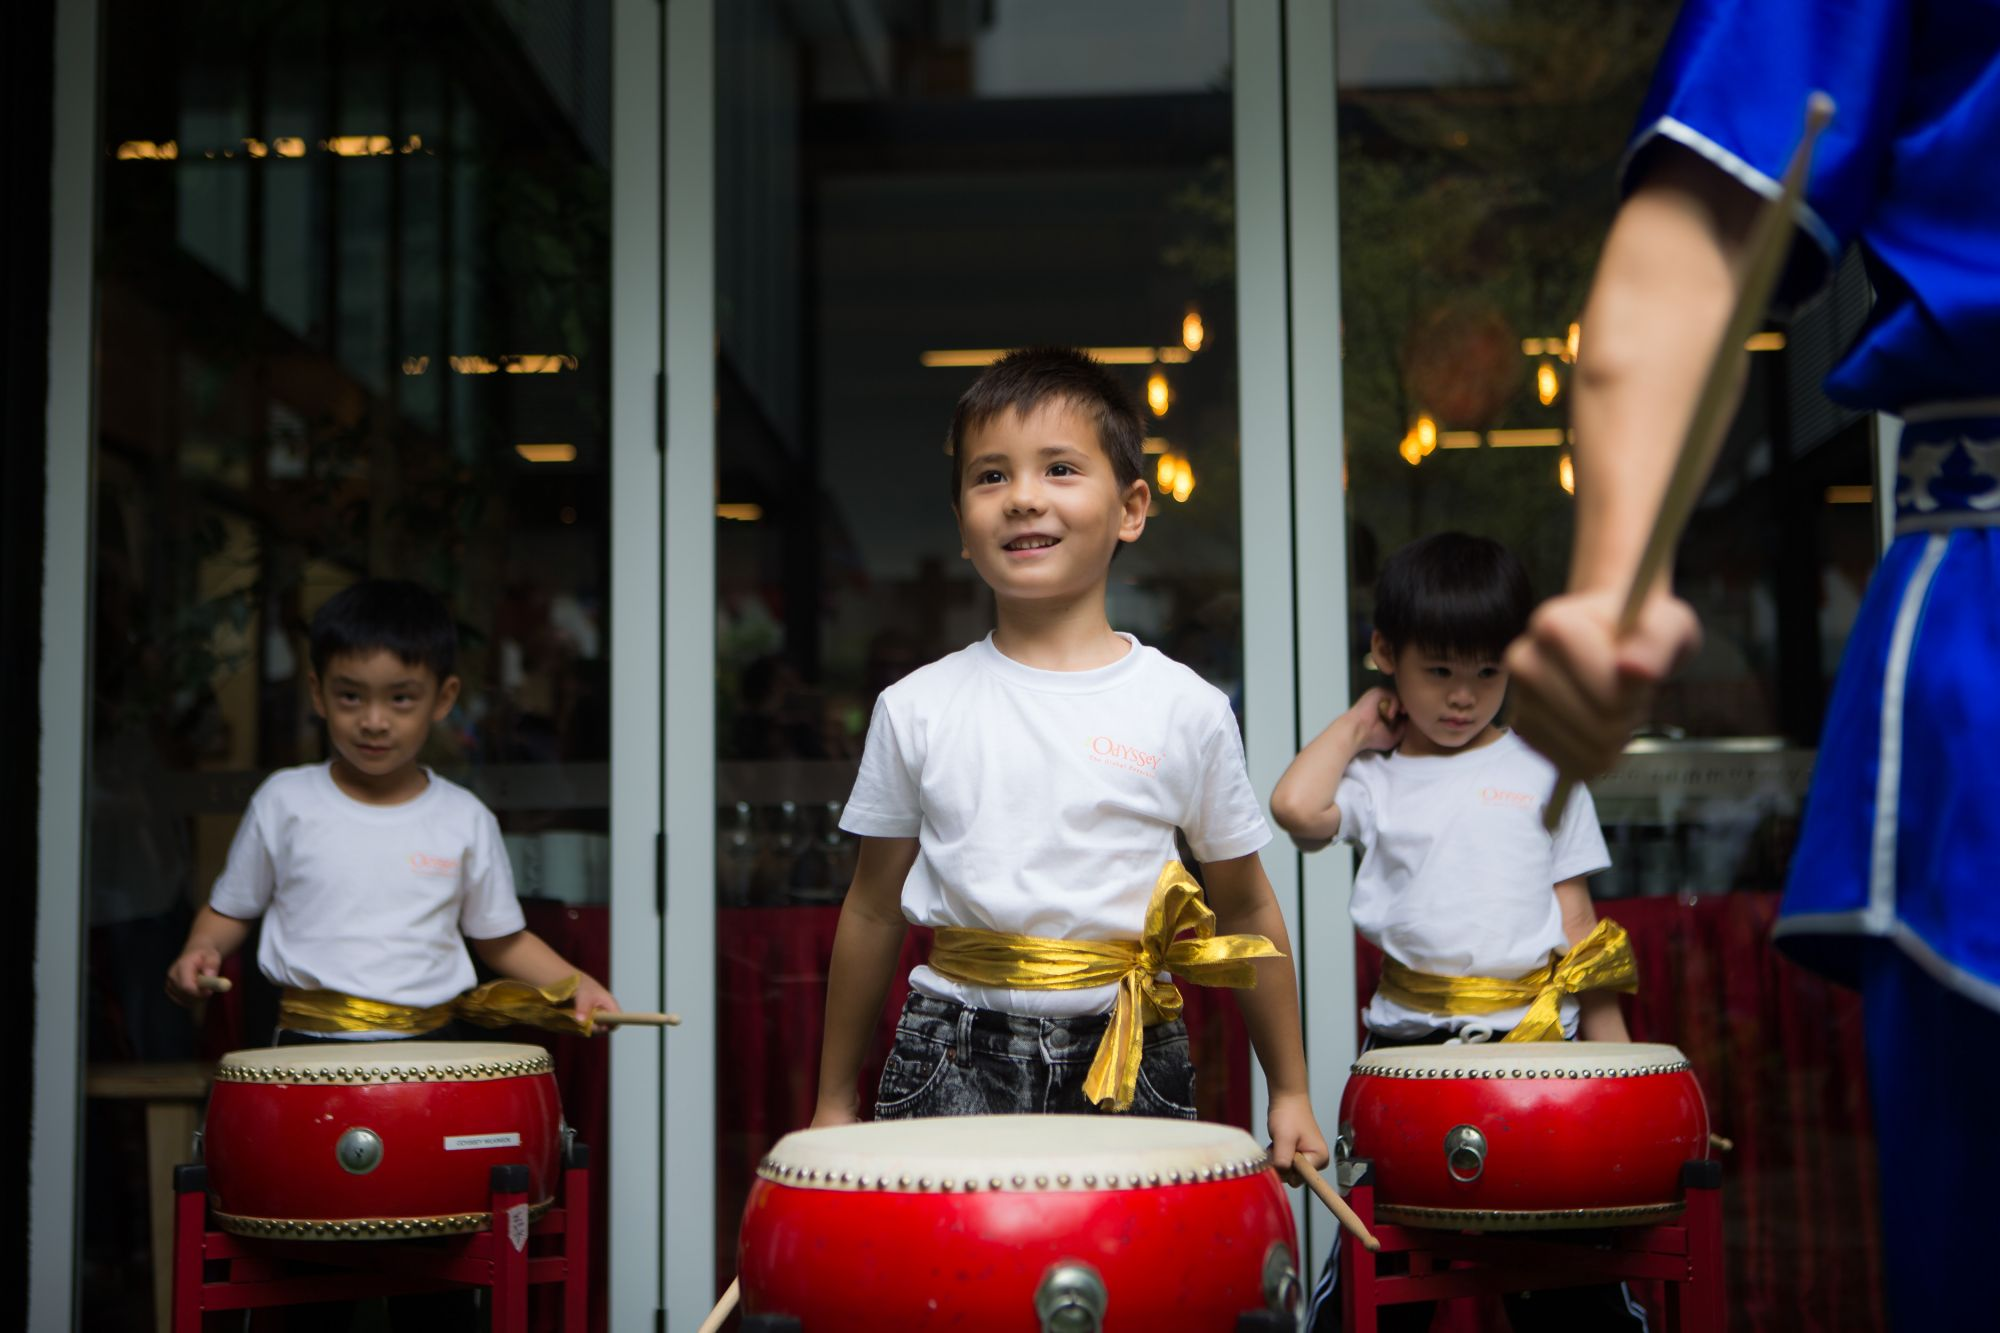 The First Preschool In Singapore With A Bespoke Programme